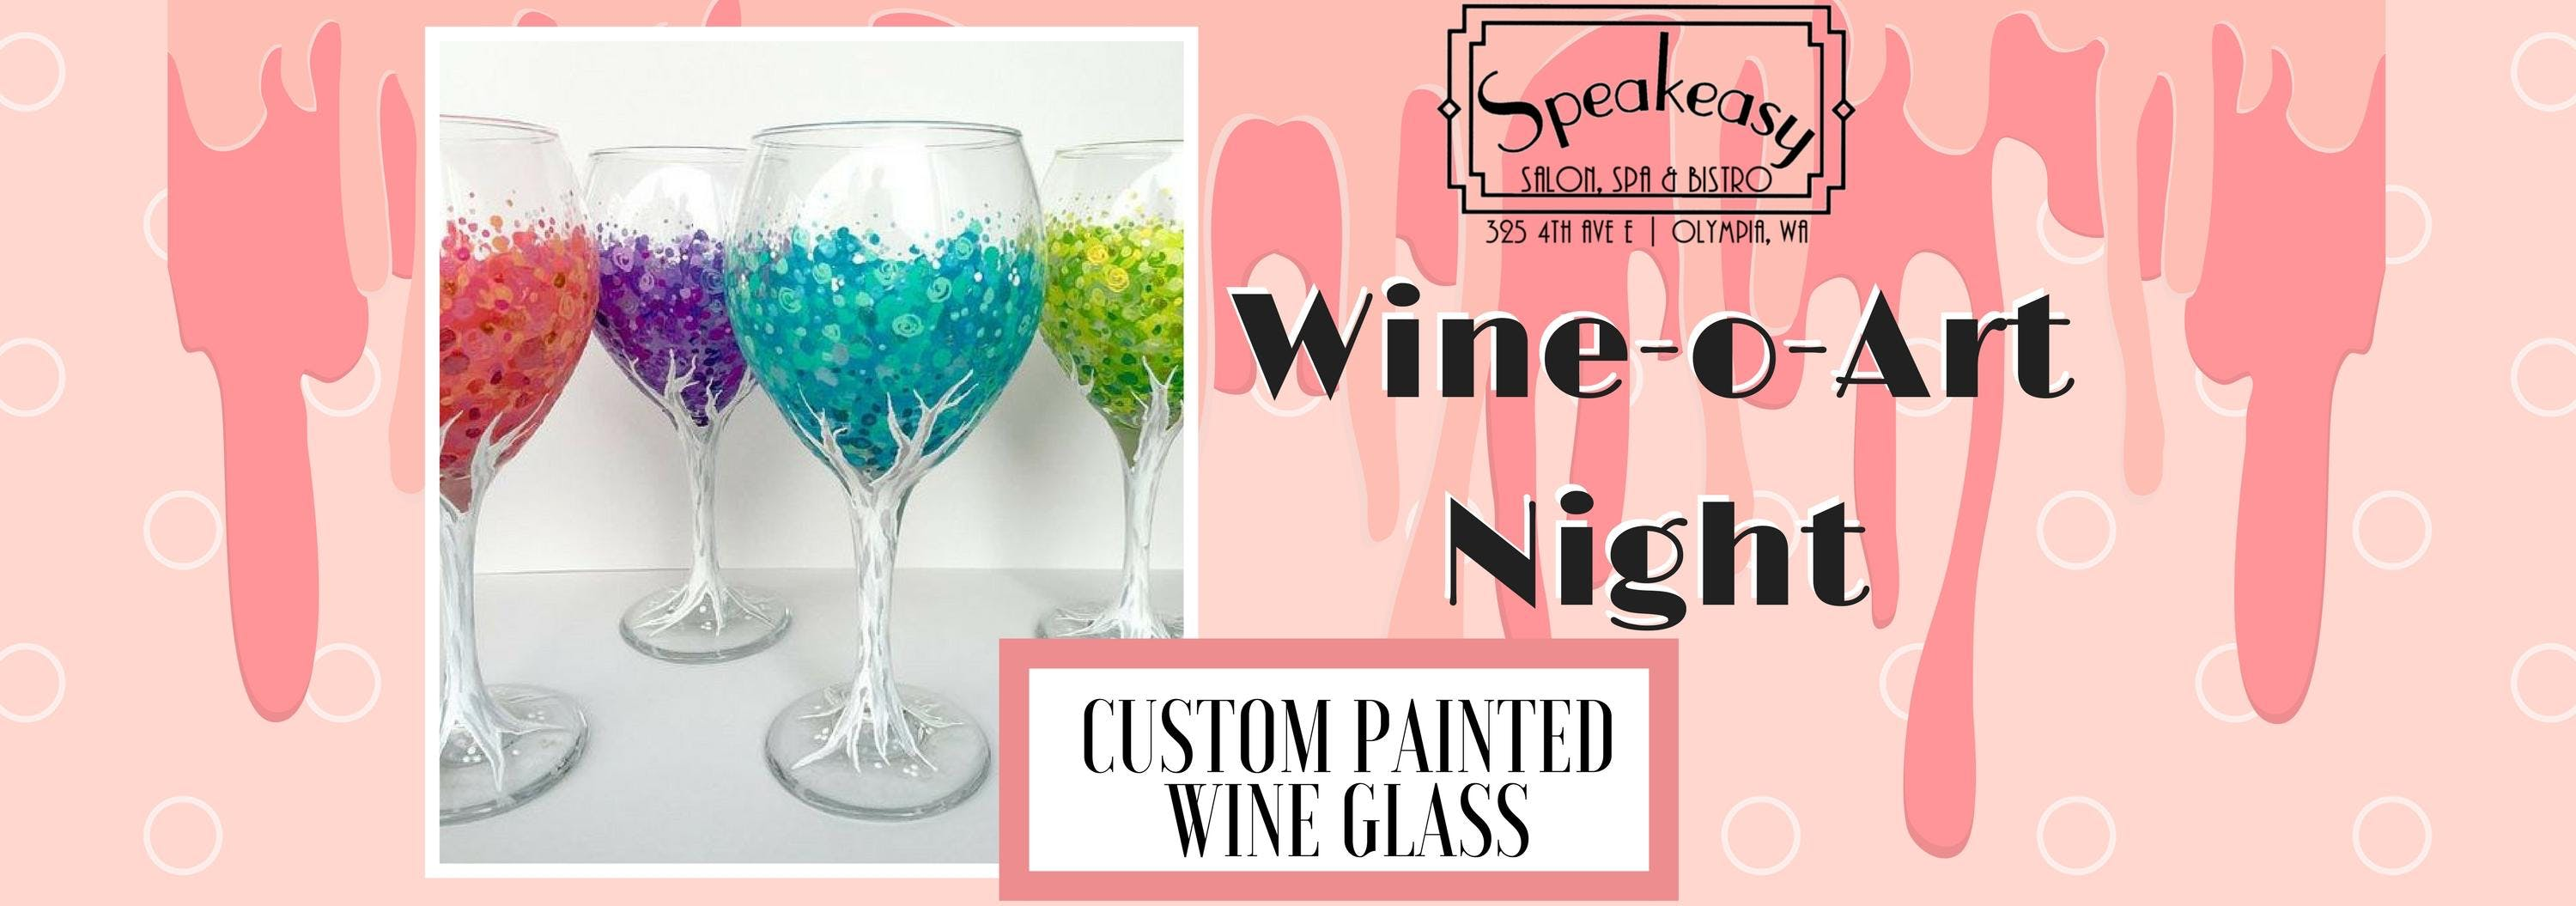 Wine-o-Art Custom Painted Wine Glass